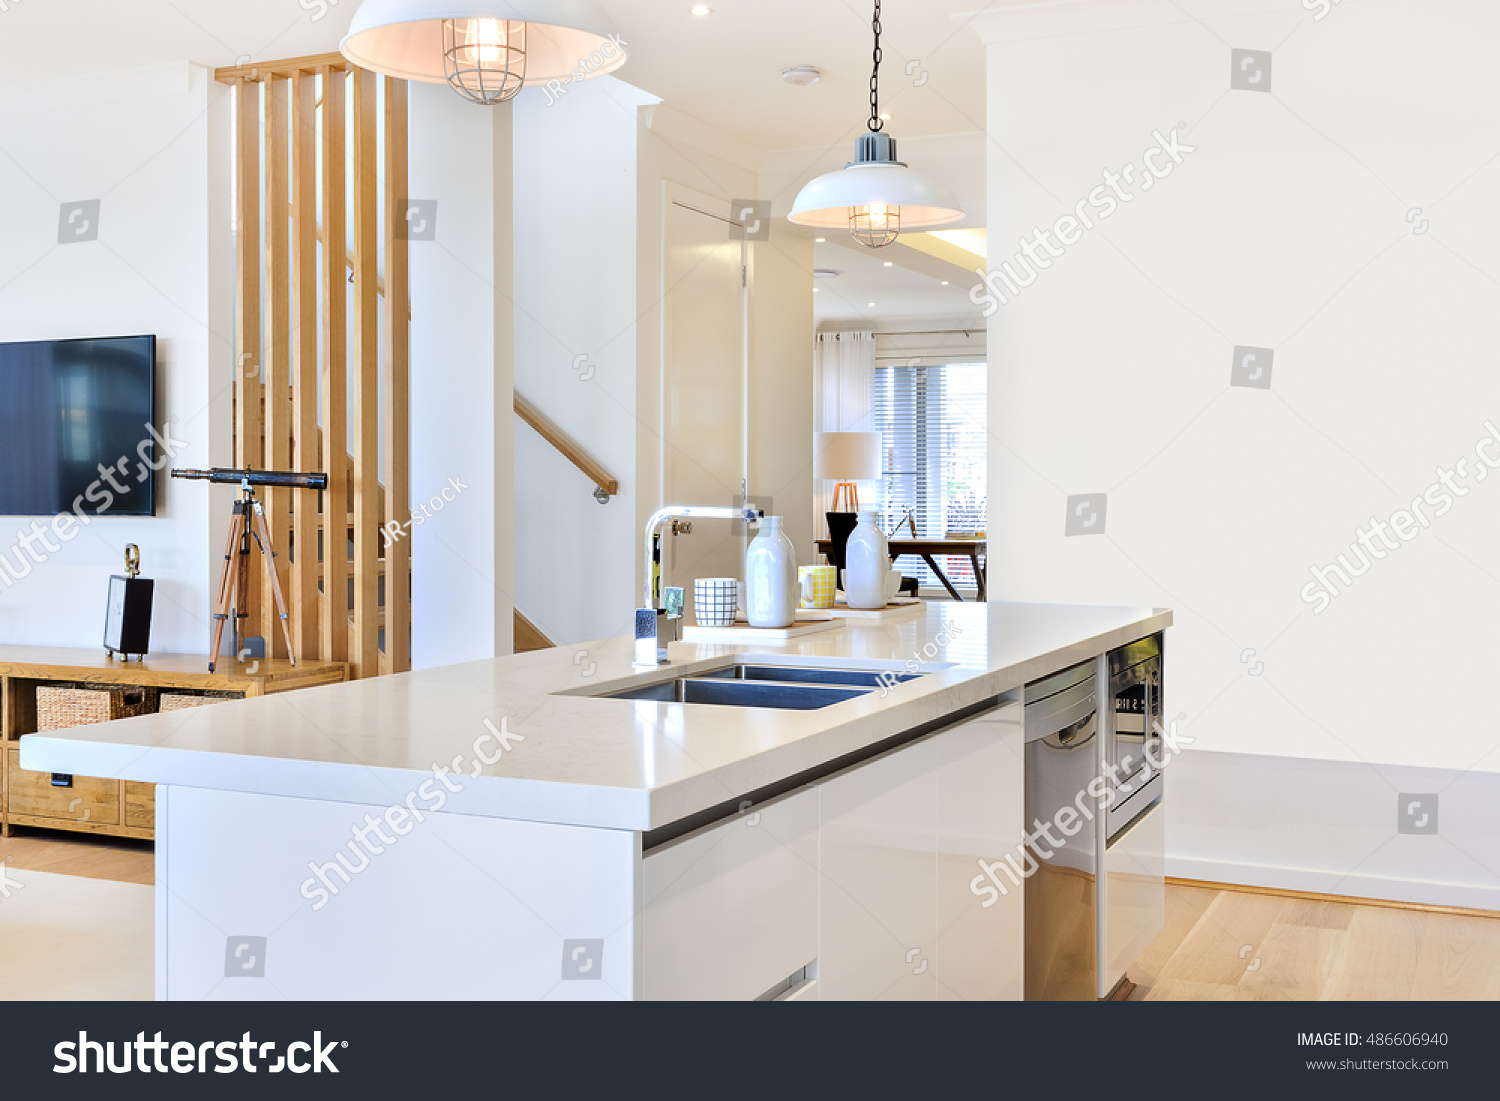 Kitchen Top View : Kitchen counter top view inside house stock photo